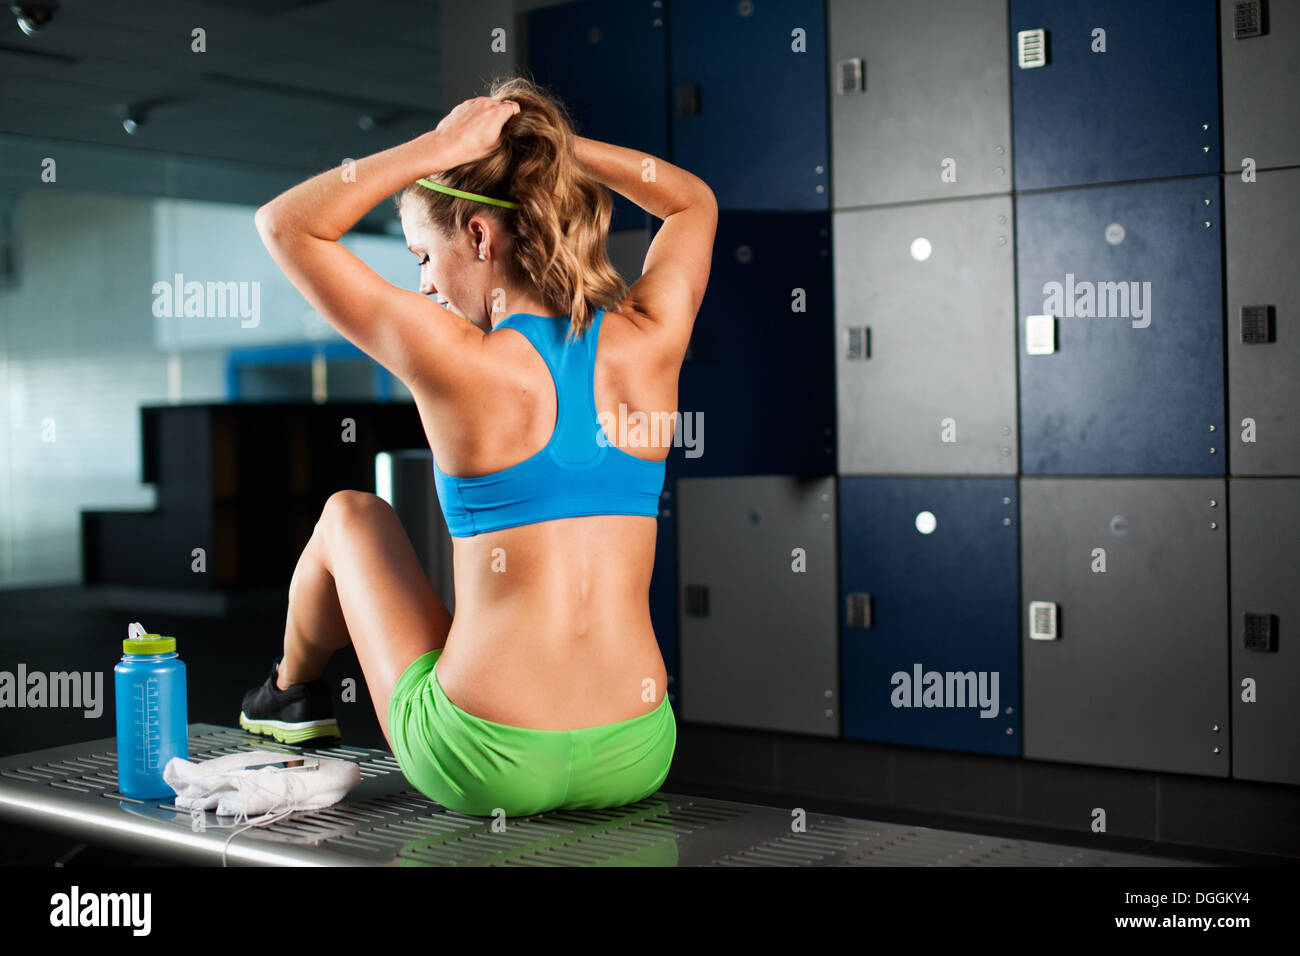 Young woman tying ponytail in gym - Stock Image